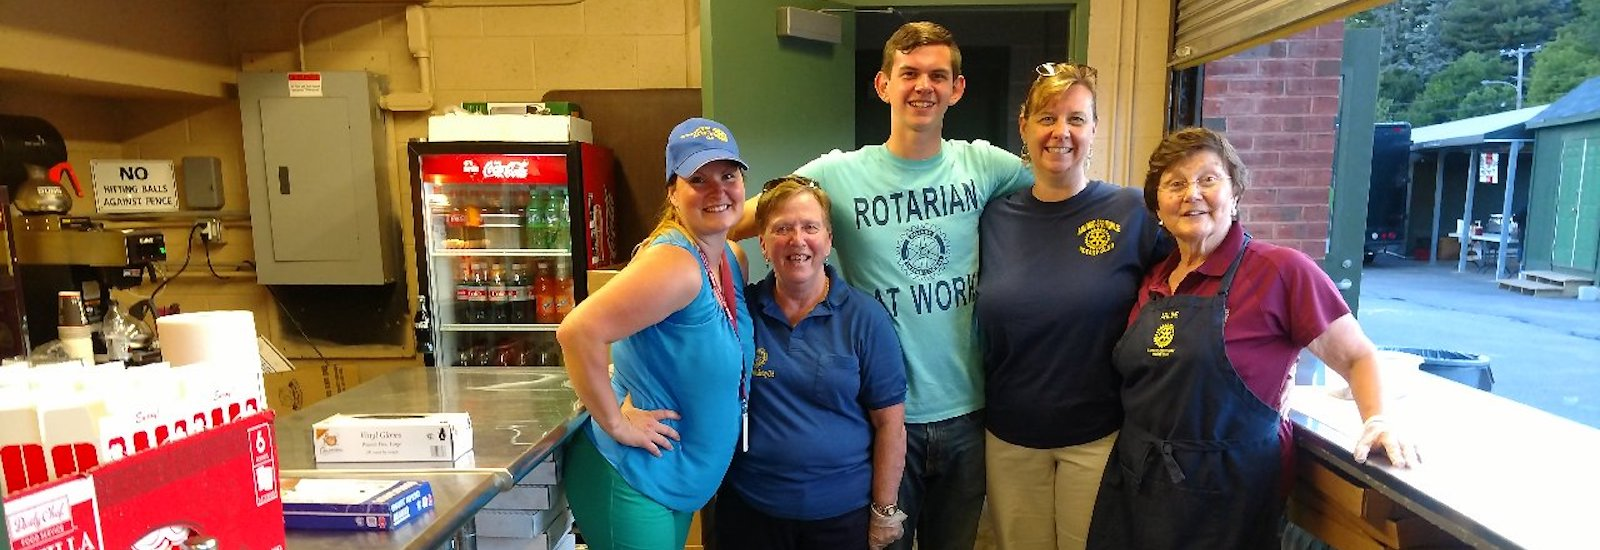 Mainer's Concession Stand Crew